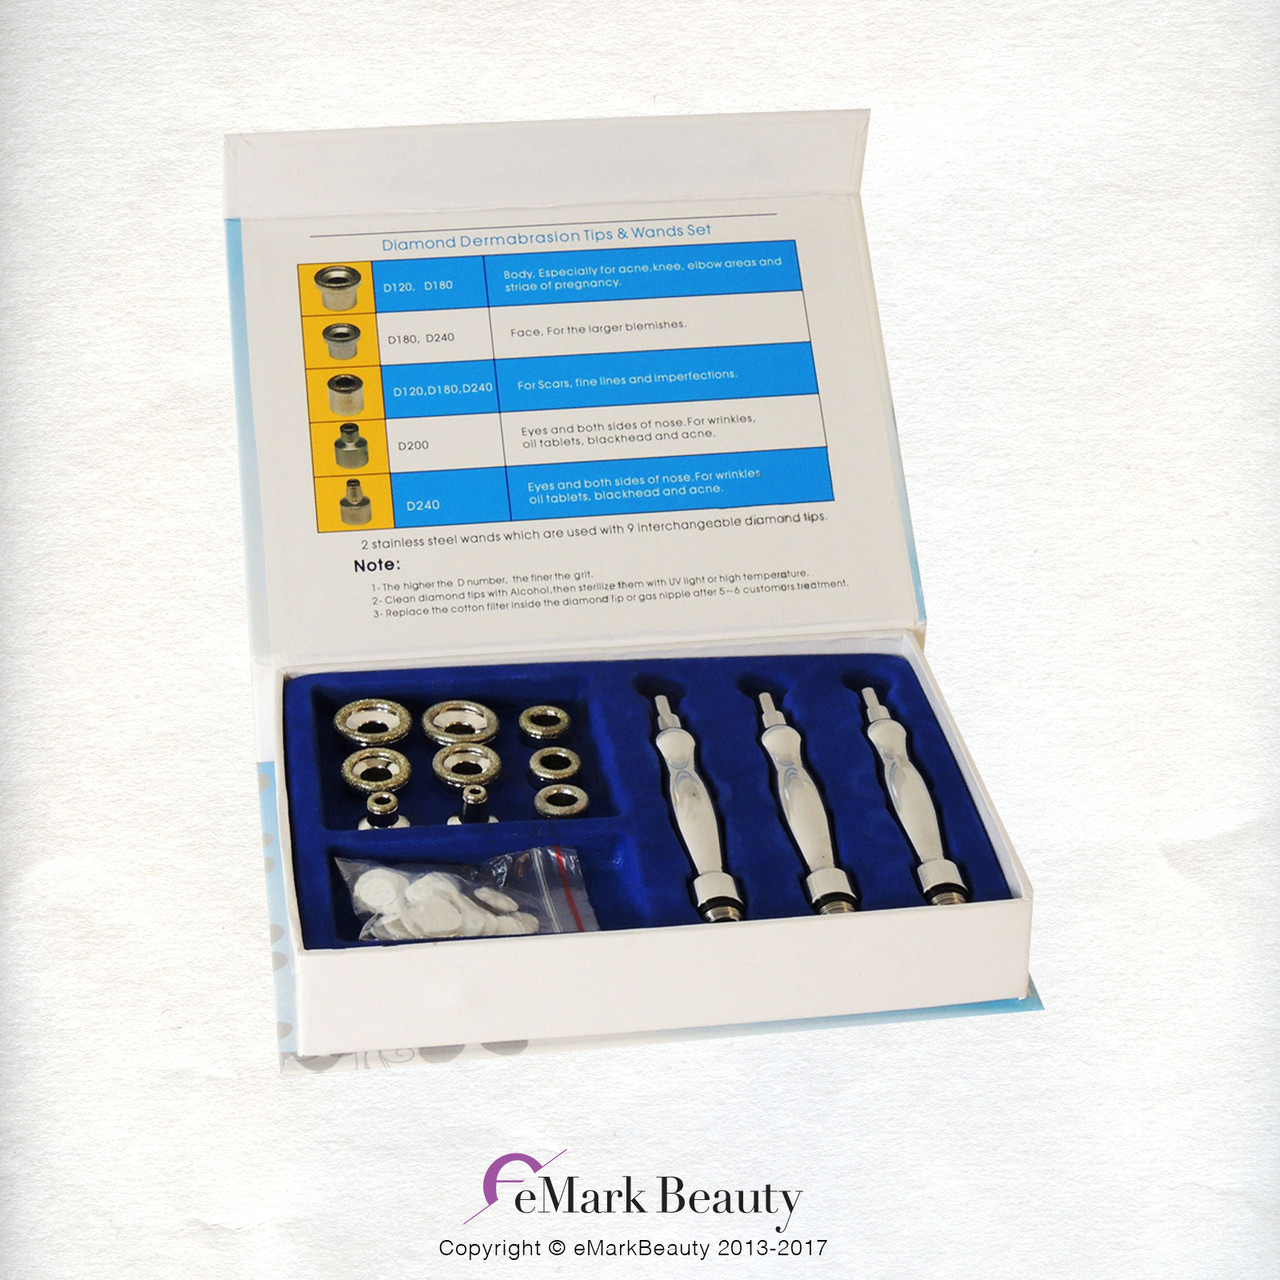 Microdermabrasion Tips and Wands TLC-8000DTW